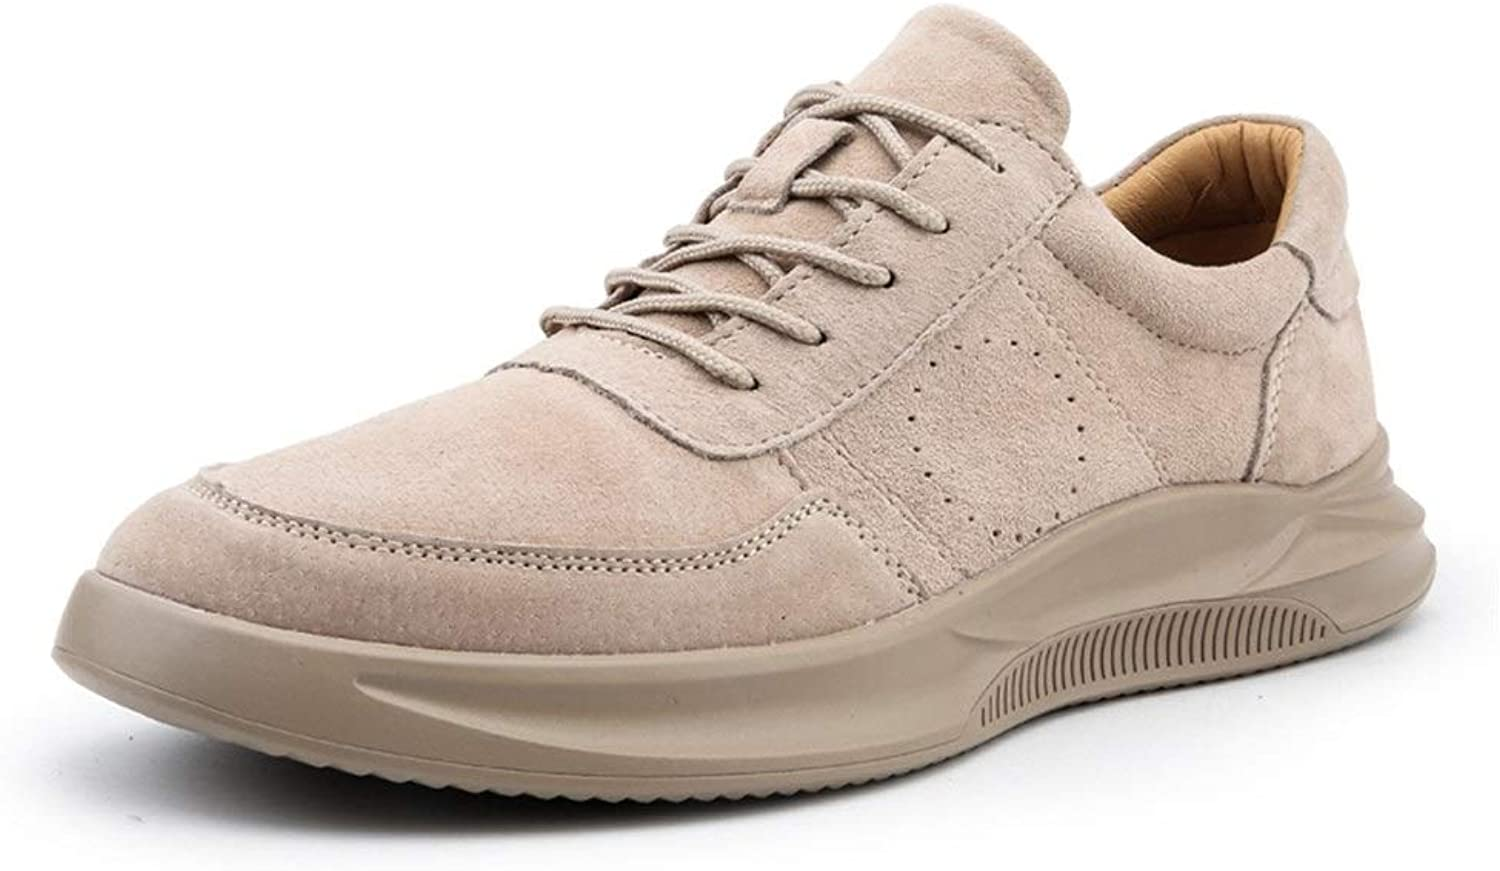 Easy Go Shopping Sneakers For Men Genuine Leather Comfortable Soft Breathable Outdoor Sport Running Anti-slip Flat Lace Up Sneakers Cricket shoes (color   Sand, Size   8 UK)